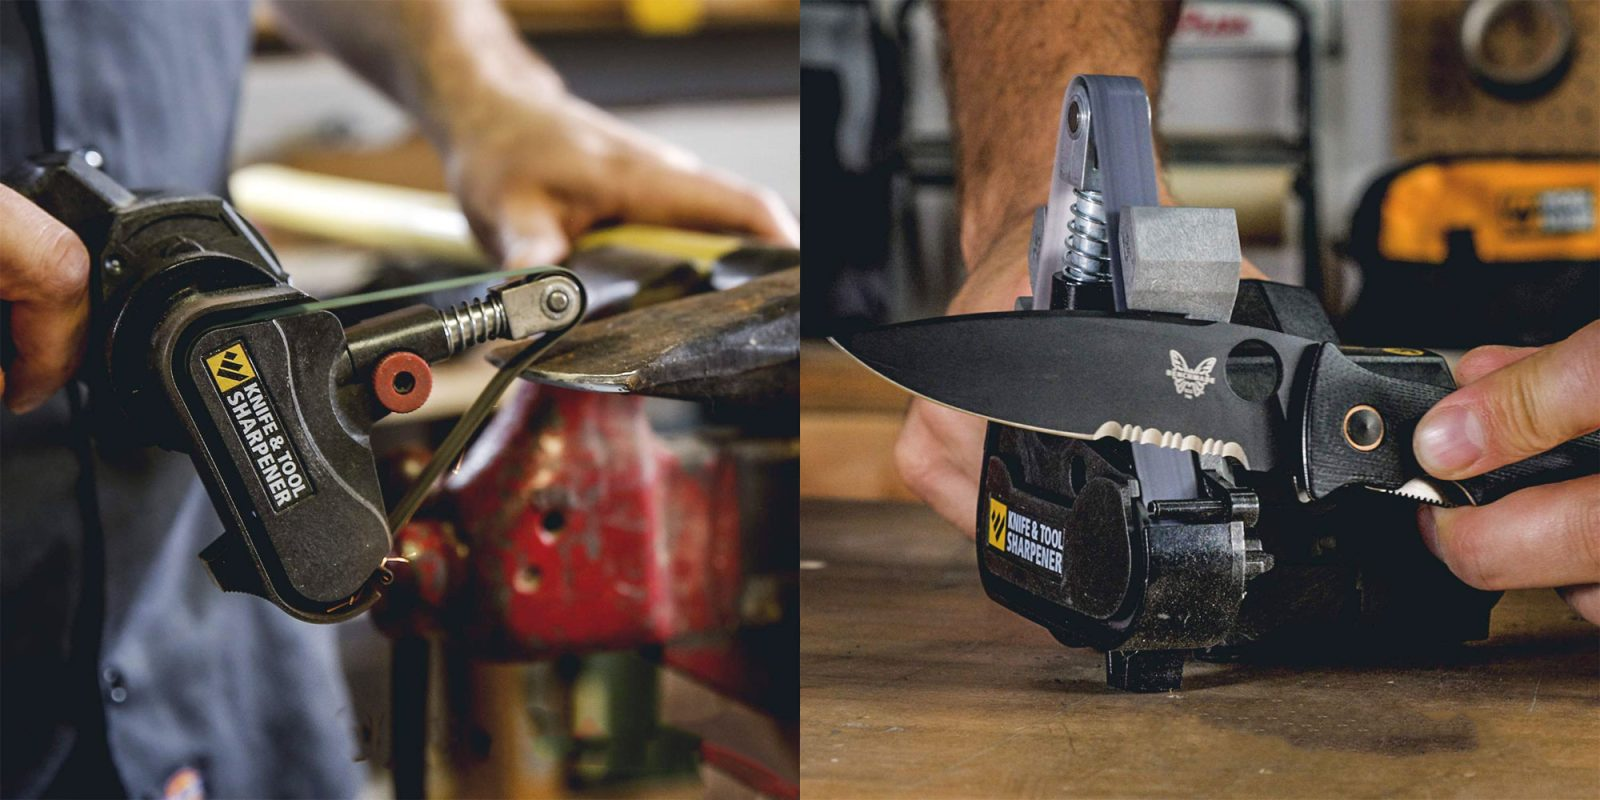 Work Sharp Knife & Tool Sharpener drops to a new low at Amazon: $53 (Reg. $70)